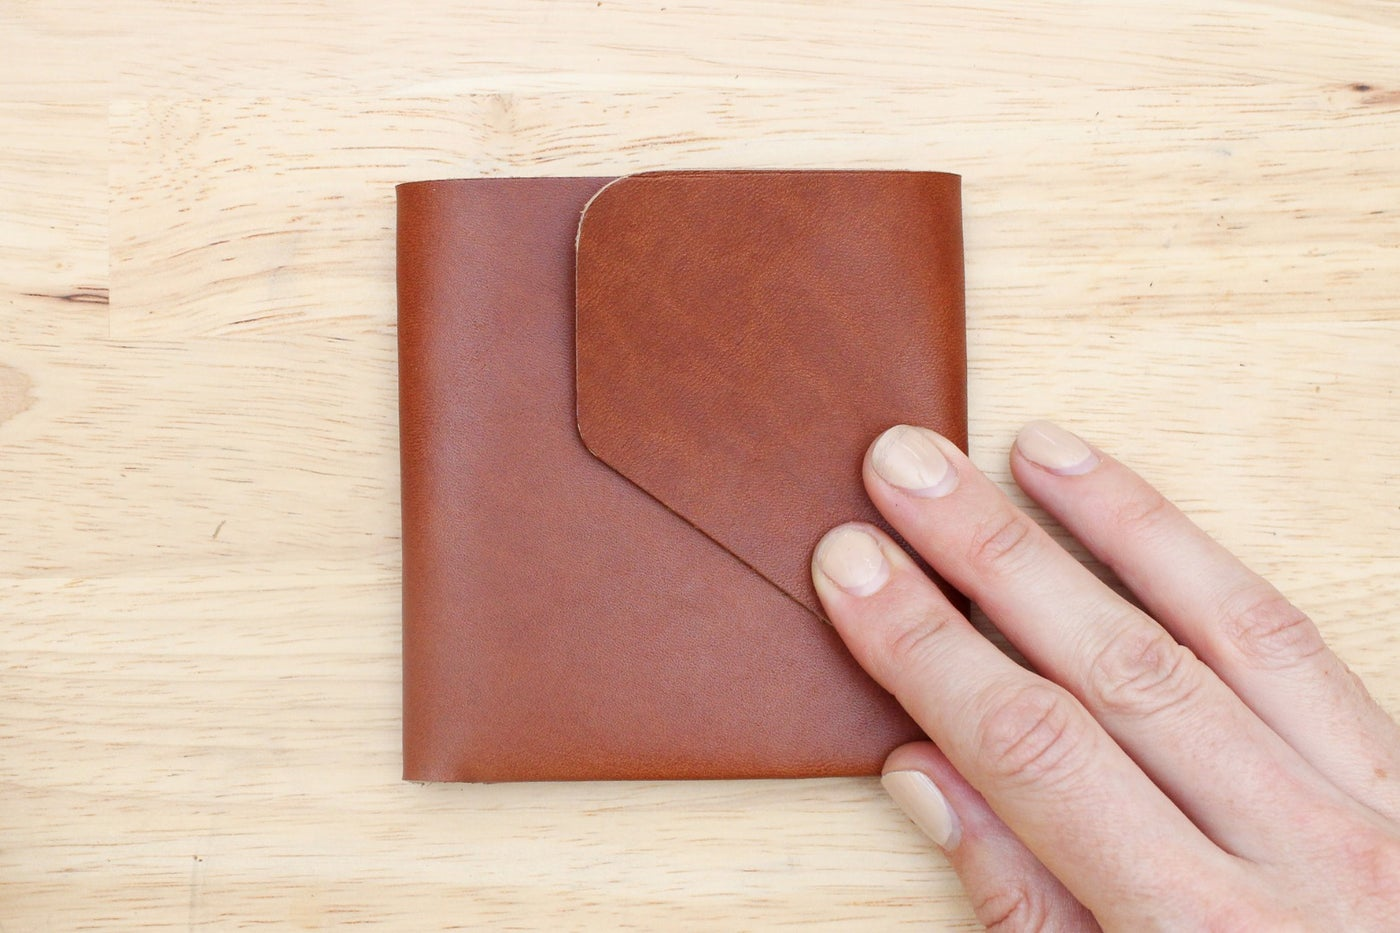 Make a Center Fold in the Wallet